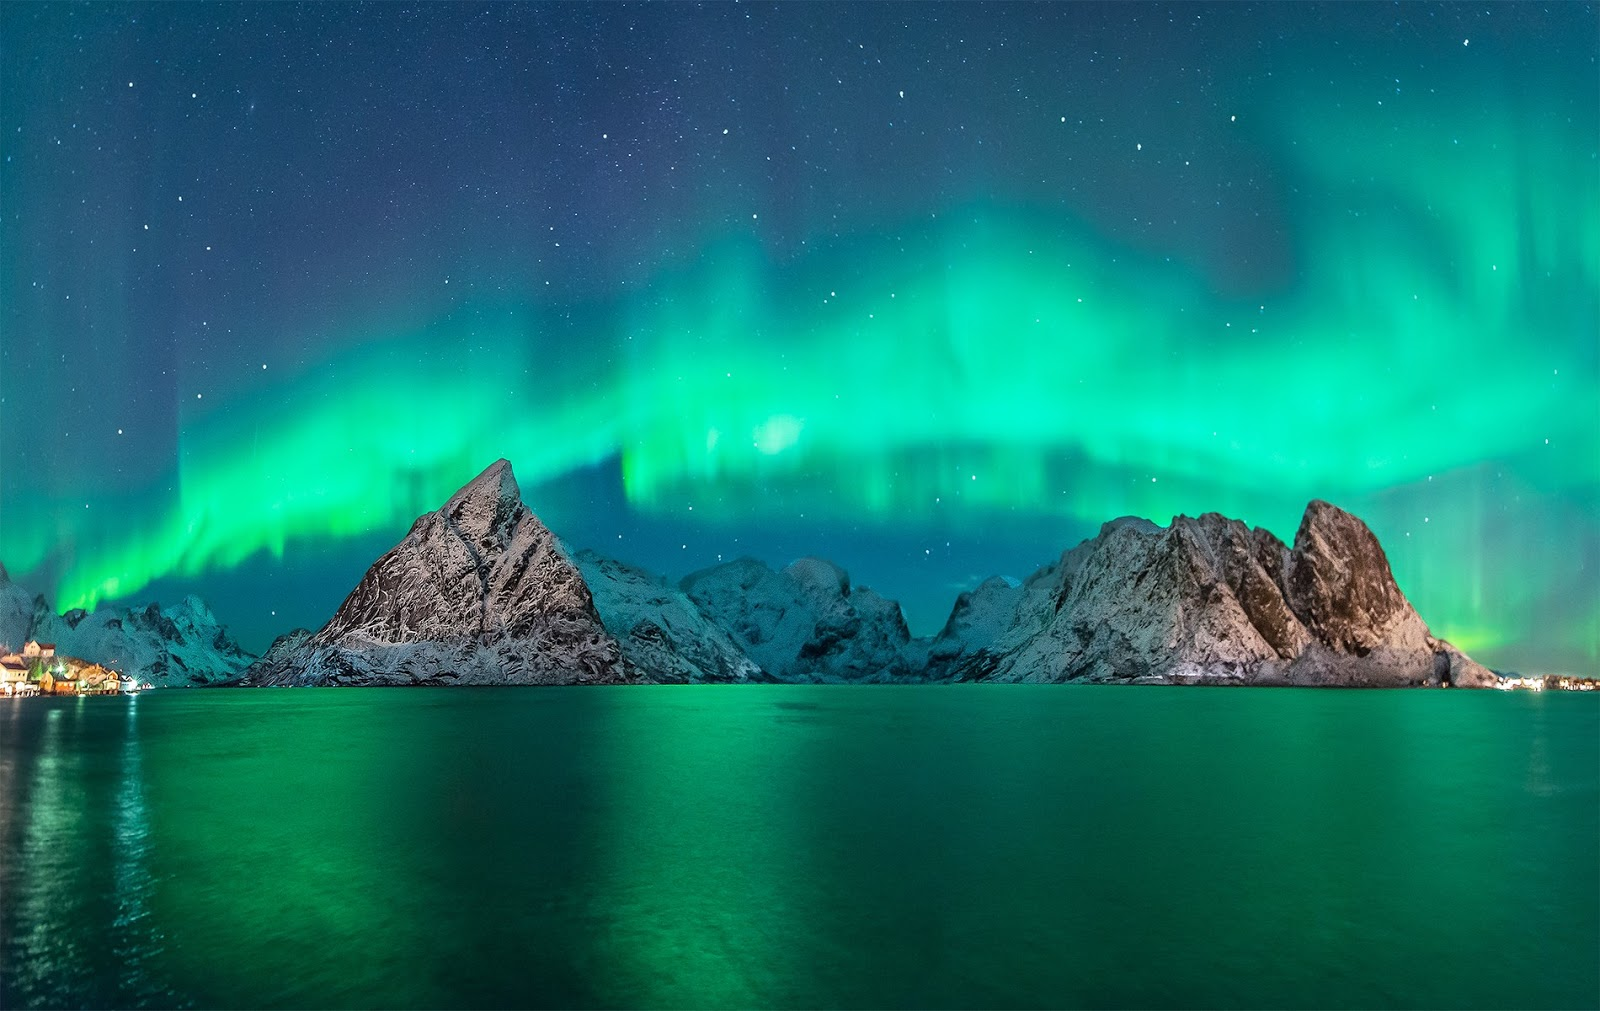 The ever-elusive Northern Lights blaze across winter skies in Vidar Lysvold, Henningsvær on the main island of Austvågøy, Norway.